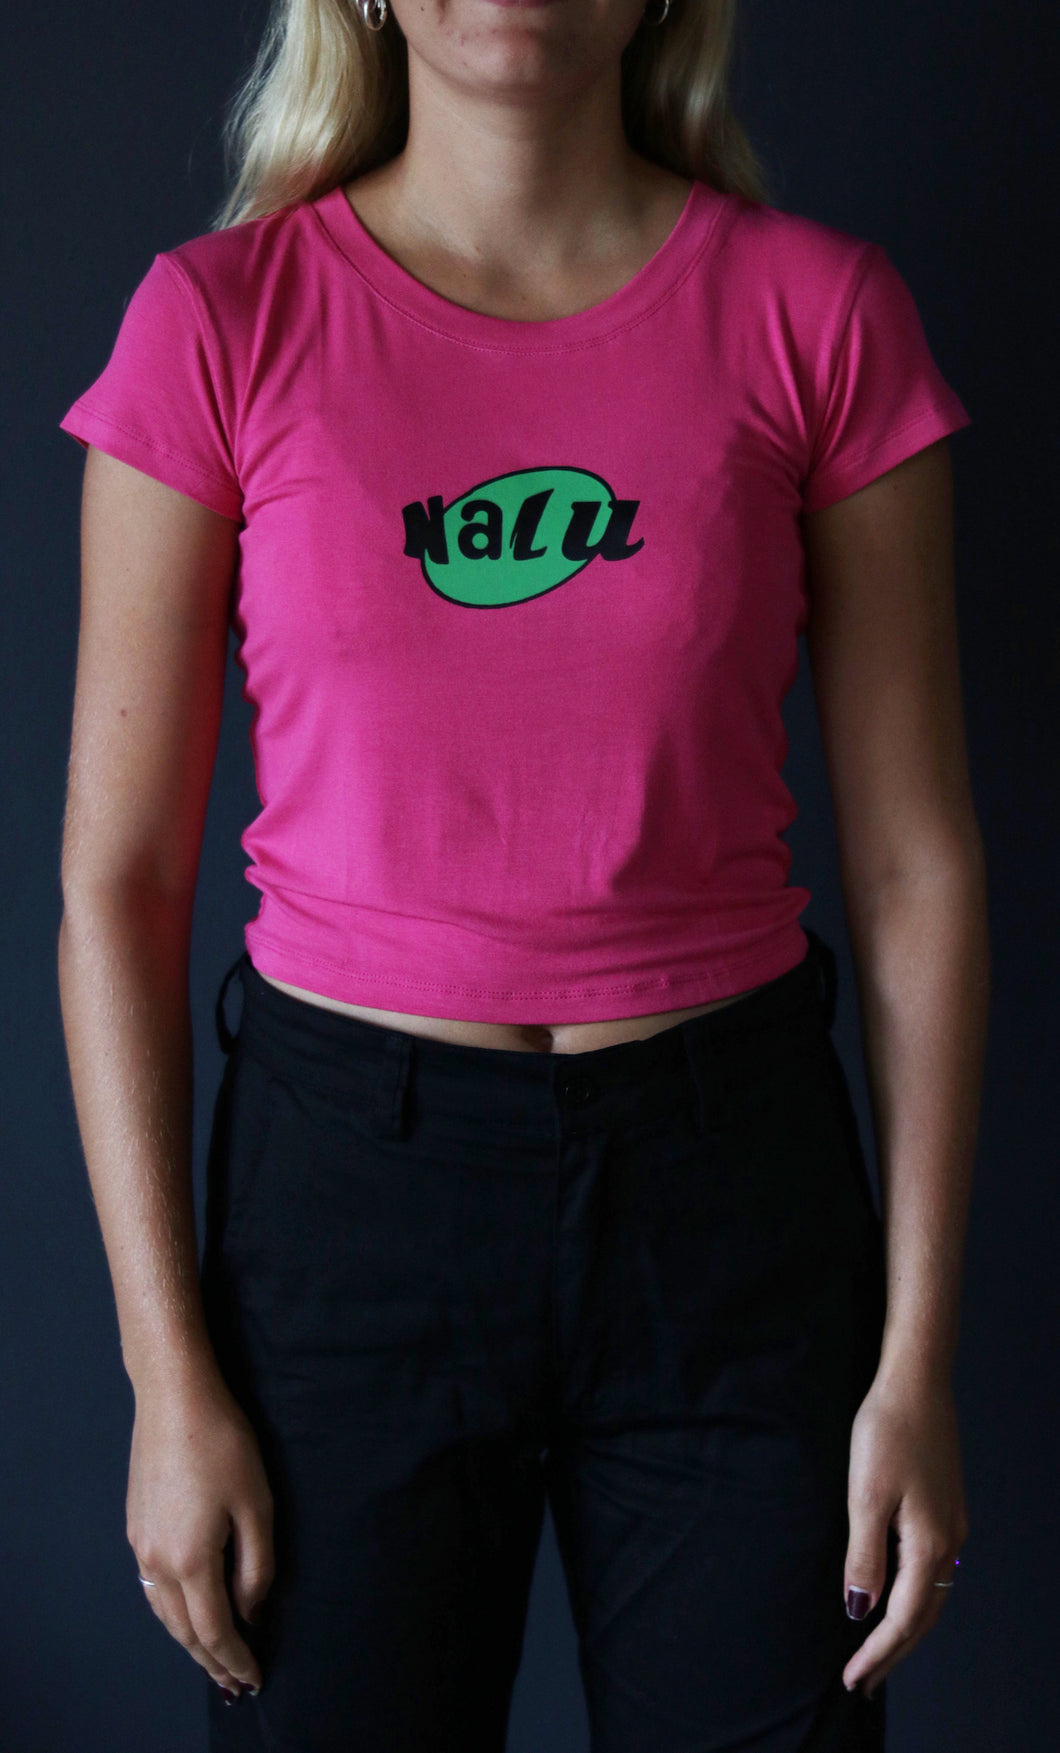 PINK NALU CROP TOP